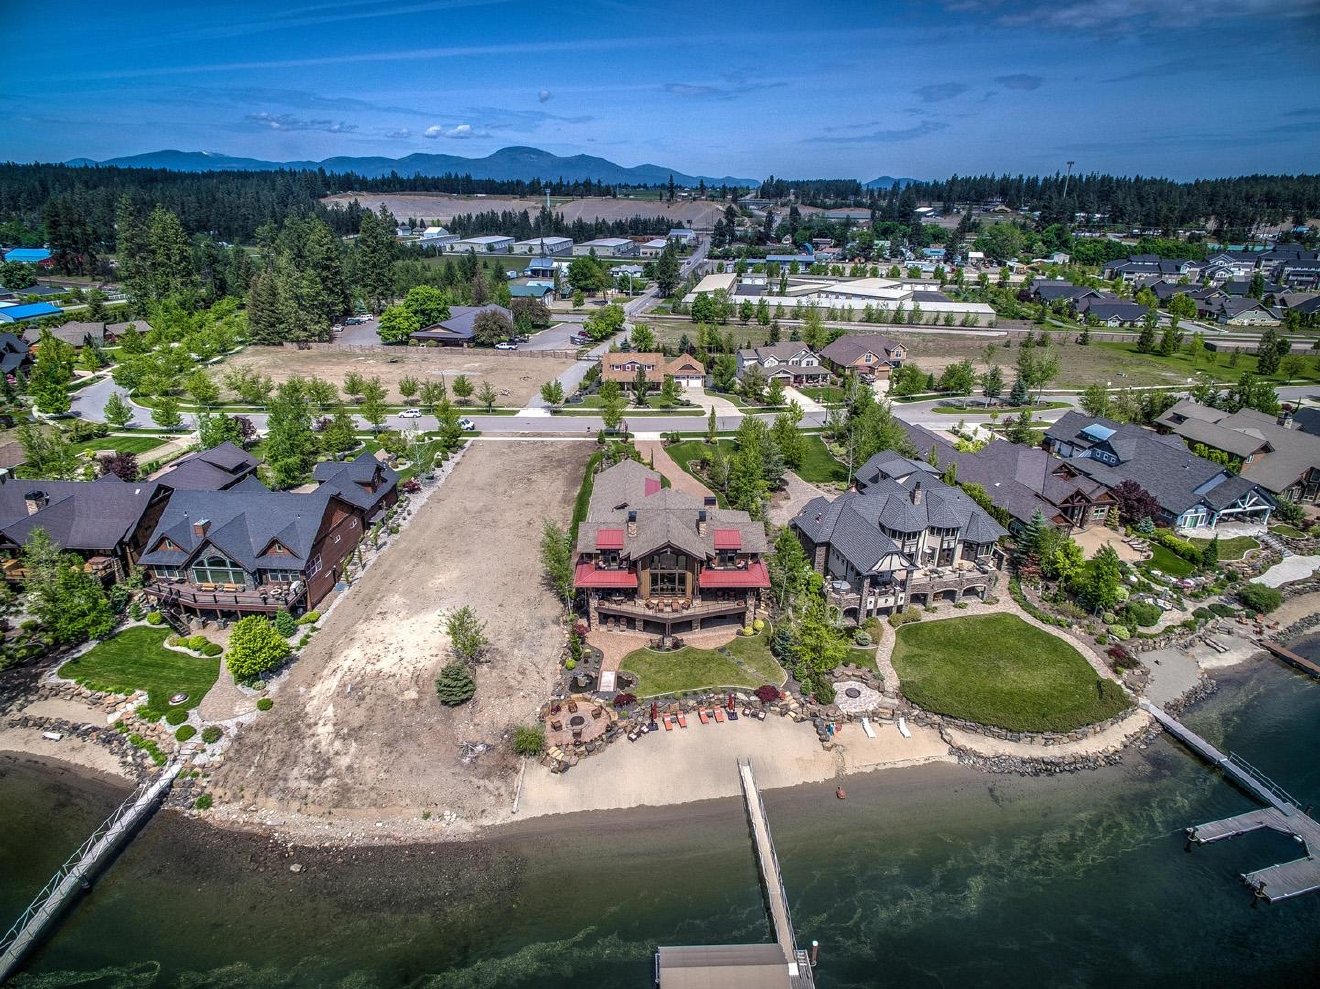 Undeniably one of the nicest homes on the Spokane River/Cda Lake!! With 5 elegant bedrooms, 5.5 baths and an elevator for convenience, this 6,651 SF home on 91 feet of sandy beach frontage will not disappoint. Featured in several magazines, this daylight walkout retreat is loaded with the highest quality appointments of the upmost quality. The floor plan includes a chef's kitchen, butler's pantry, a wet bar to be envious of and a uniquely designed wine cellar. The theater room is equipped perfectly for viewing pleasures to be envious of. Professionally decorated and architecturally designed including the front and rear water features and firepit. Deep water frontage keeps you boating longer and the spacious 4 car garage provides ample protected parking. | Information: 208-640-8086 tomtorg@roadrunner.com